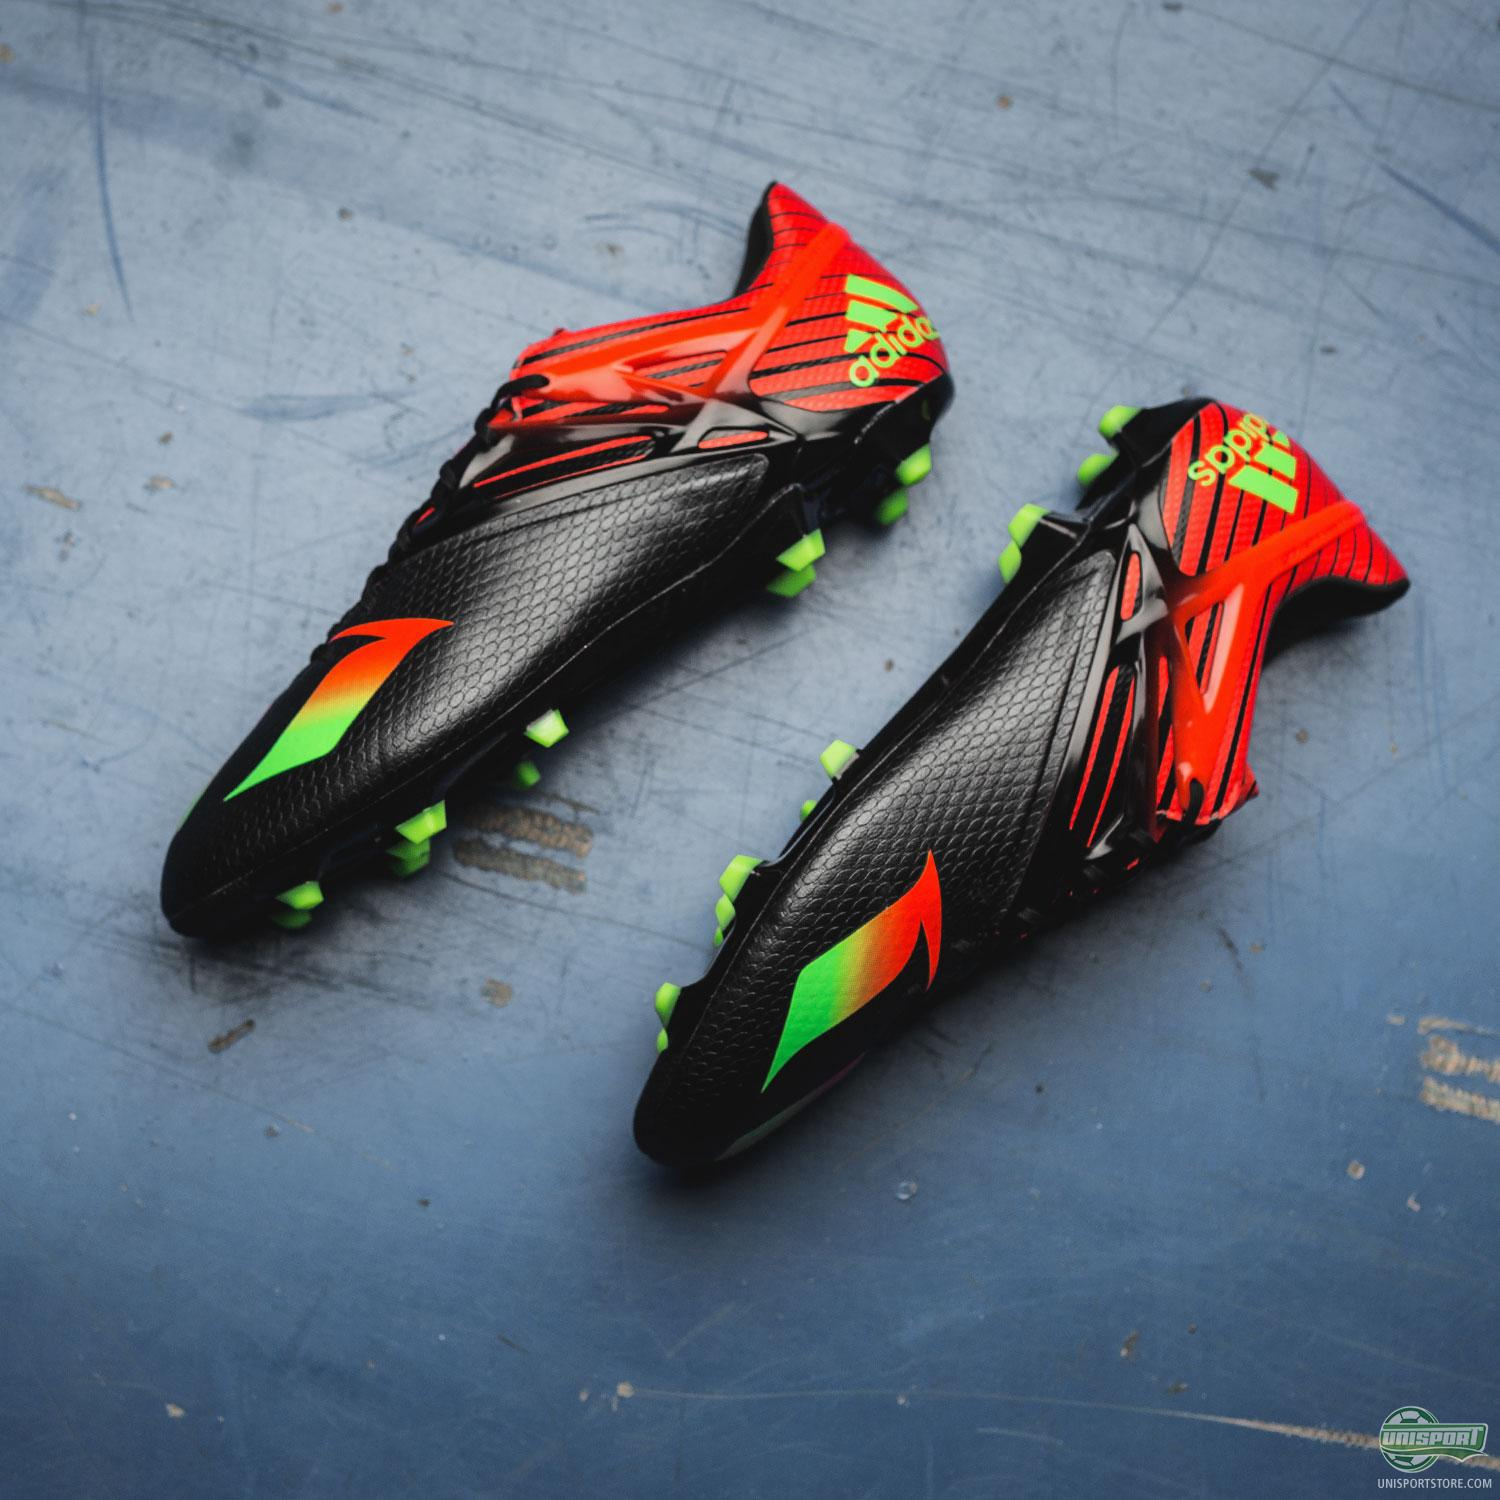 premium selection d1fea 87af2 Luckily the Portuguese flag is very good looking, as far as flags go, and  also makes for a brilliant colour scheme on the new adidas Messi15.1 boots.